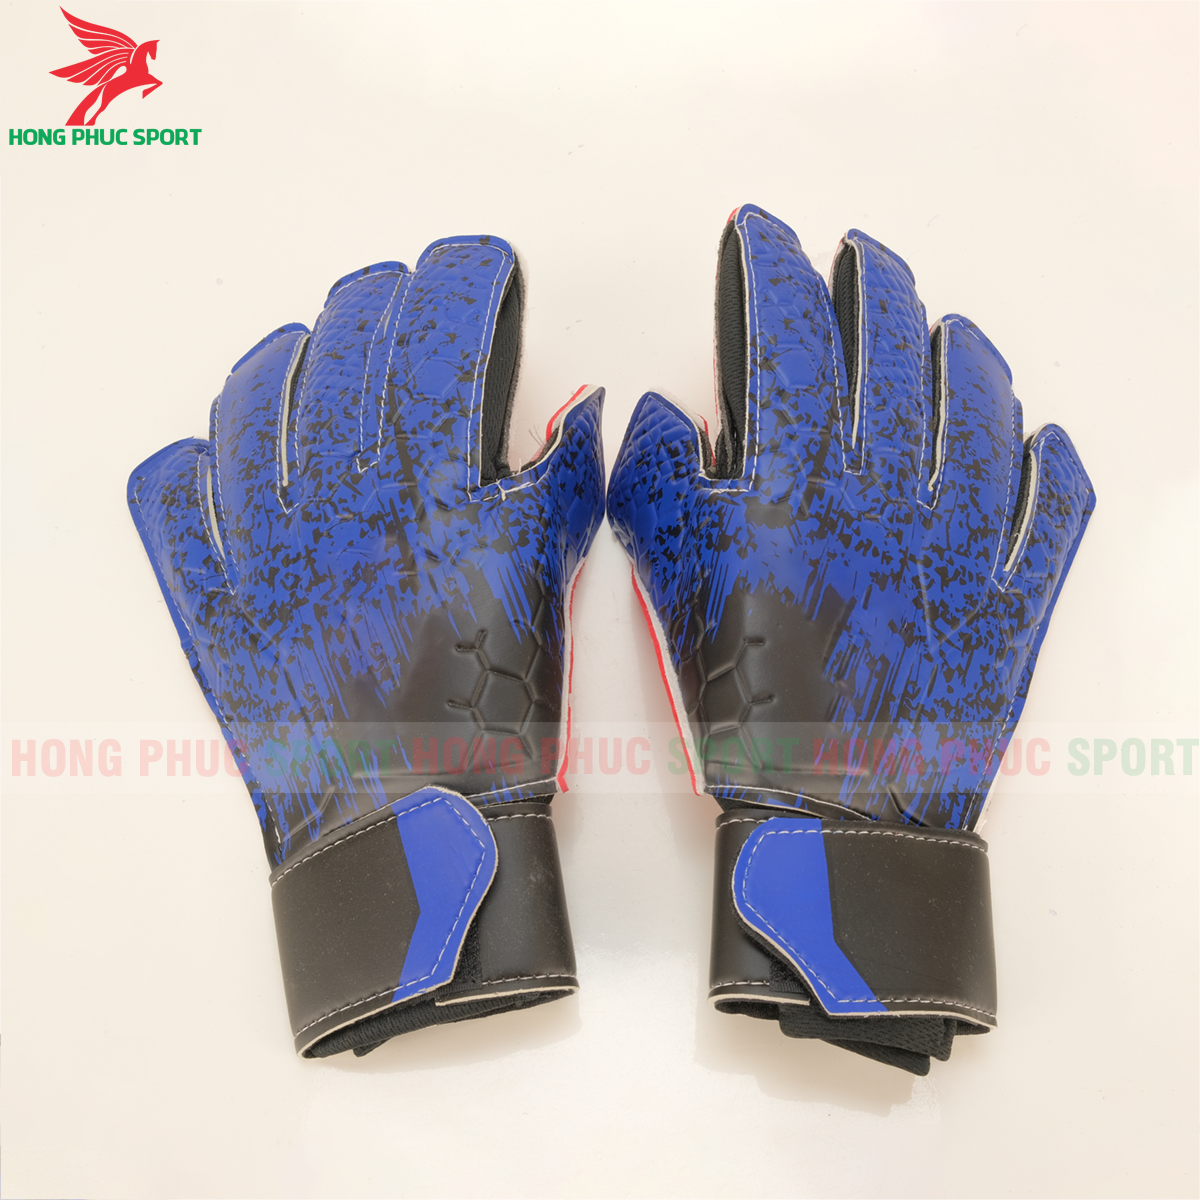 https://cdn.hongphucsport.com/unsafe/s4.shopbay.vn/files/285/gang-tay-thu-mon-adidas-mau-xanh-duong-5f7c26df812cb.png